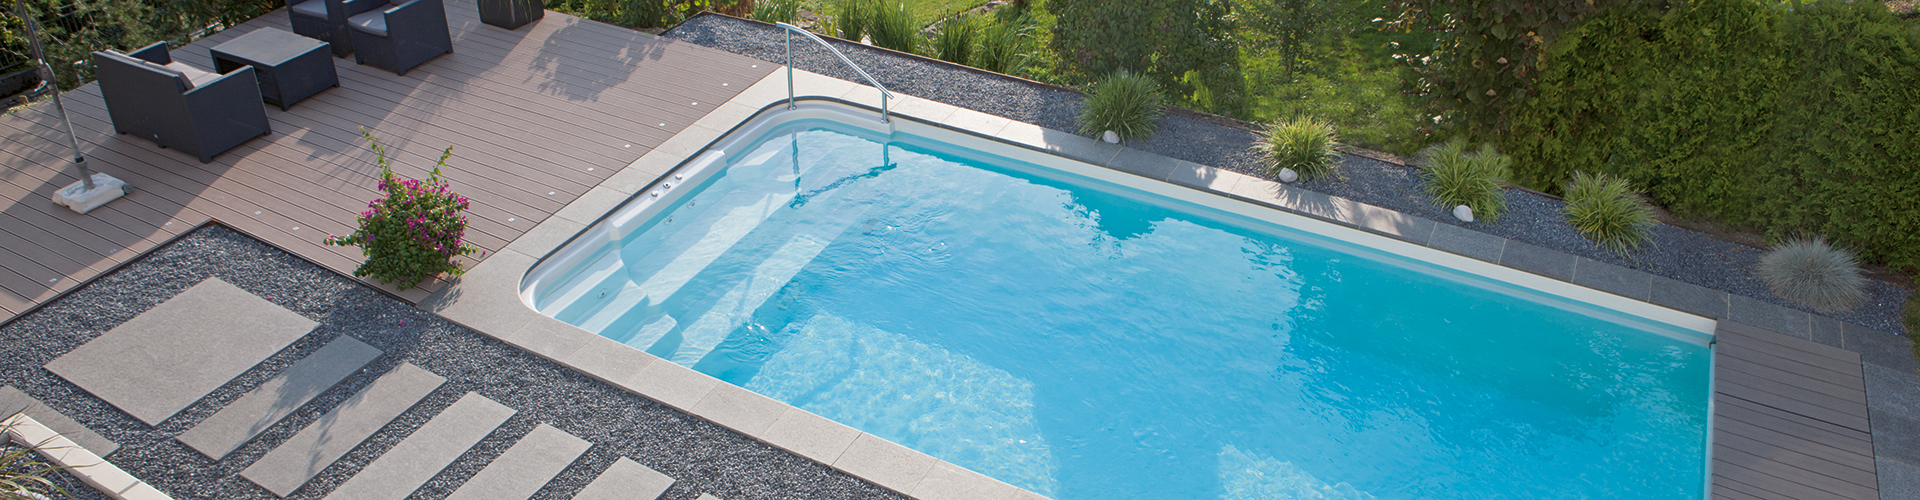 Piscine polyester gamme style centerspas for Piscine coque polyester martinique